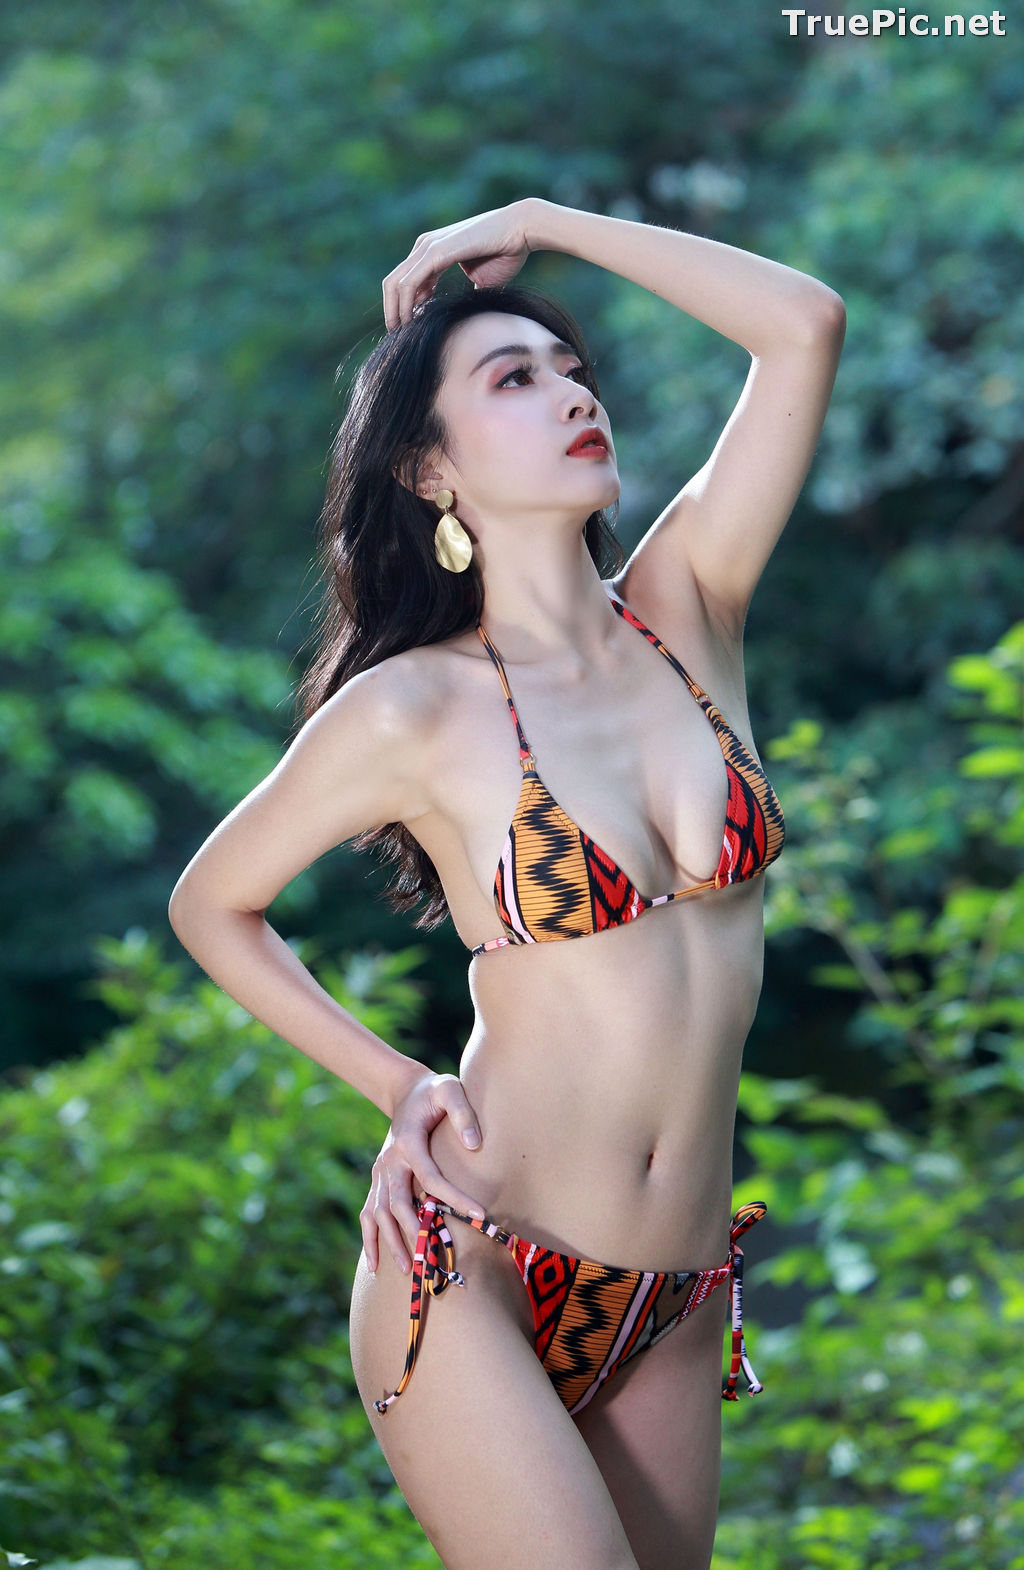 Image Taiwanese Model - 段璟樂 - Lovely and Sexy Bikini Baby - TruePic.net - Picture-3